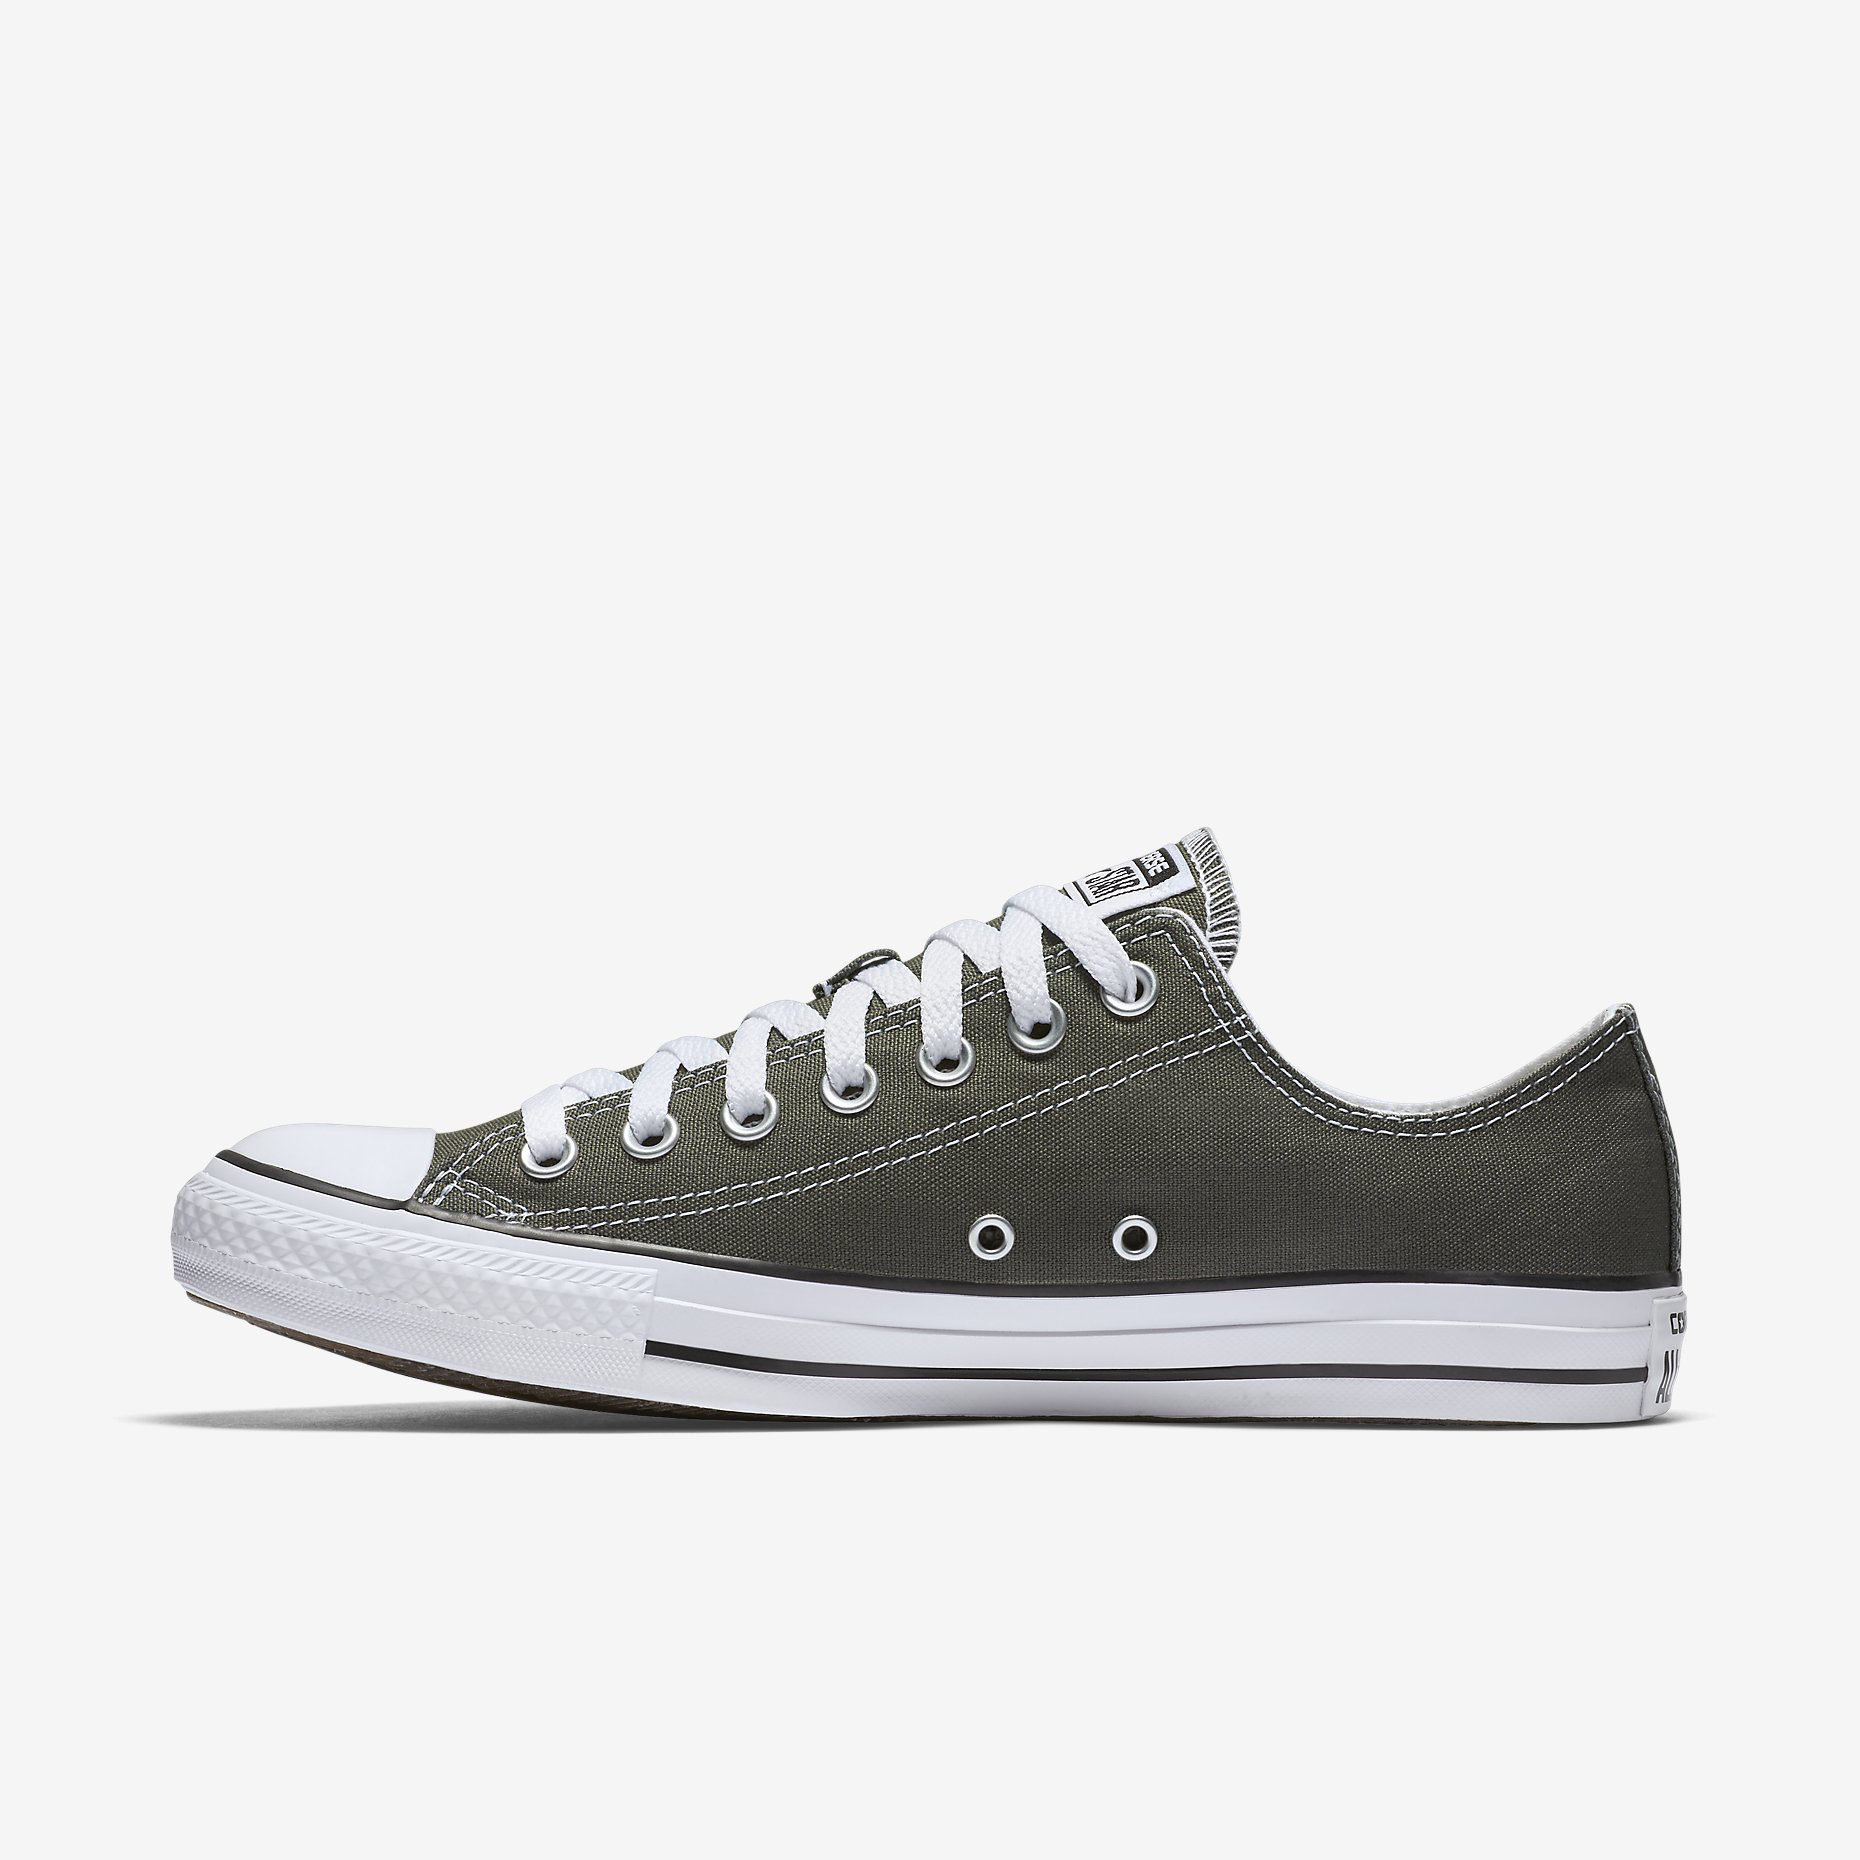 6b686d8f00d0 Converse Chuck Taylor All Star Unisex Low Top Charcoal – DIYkicks